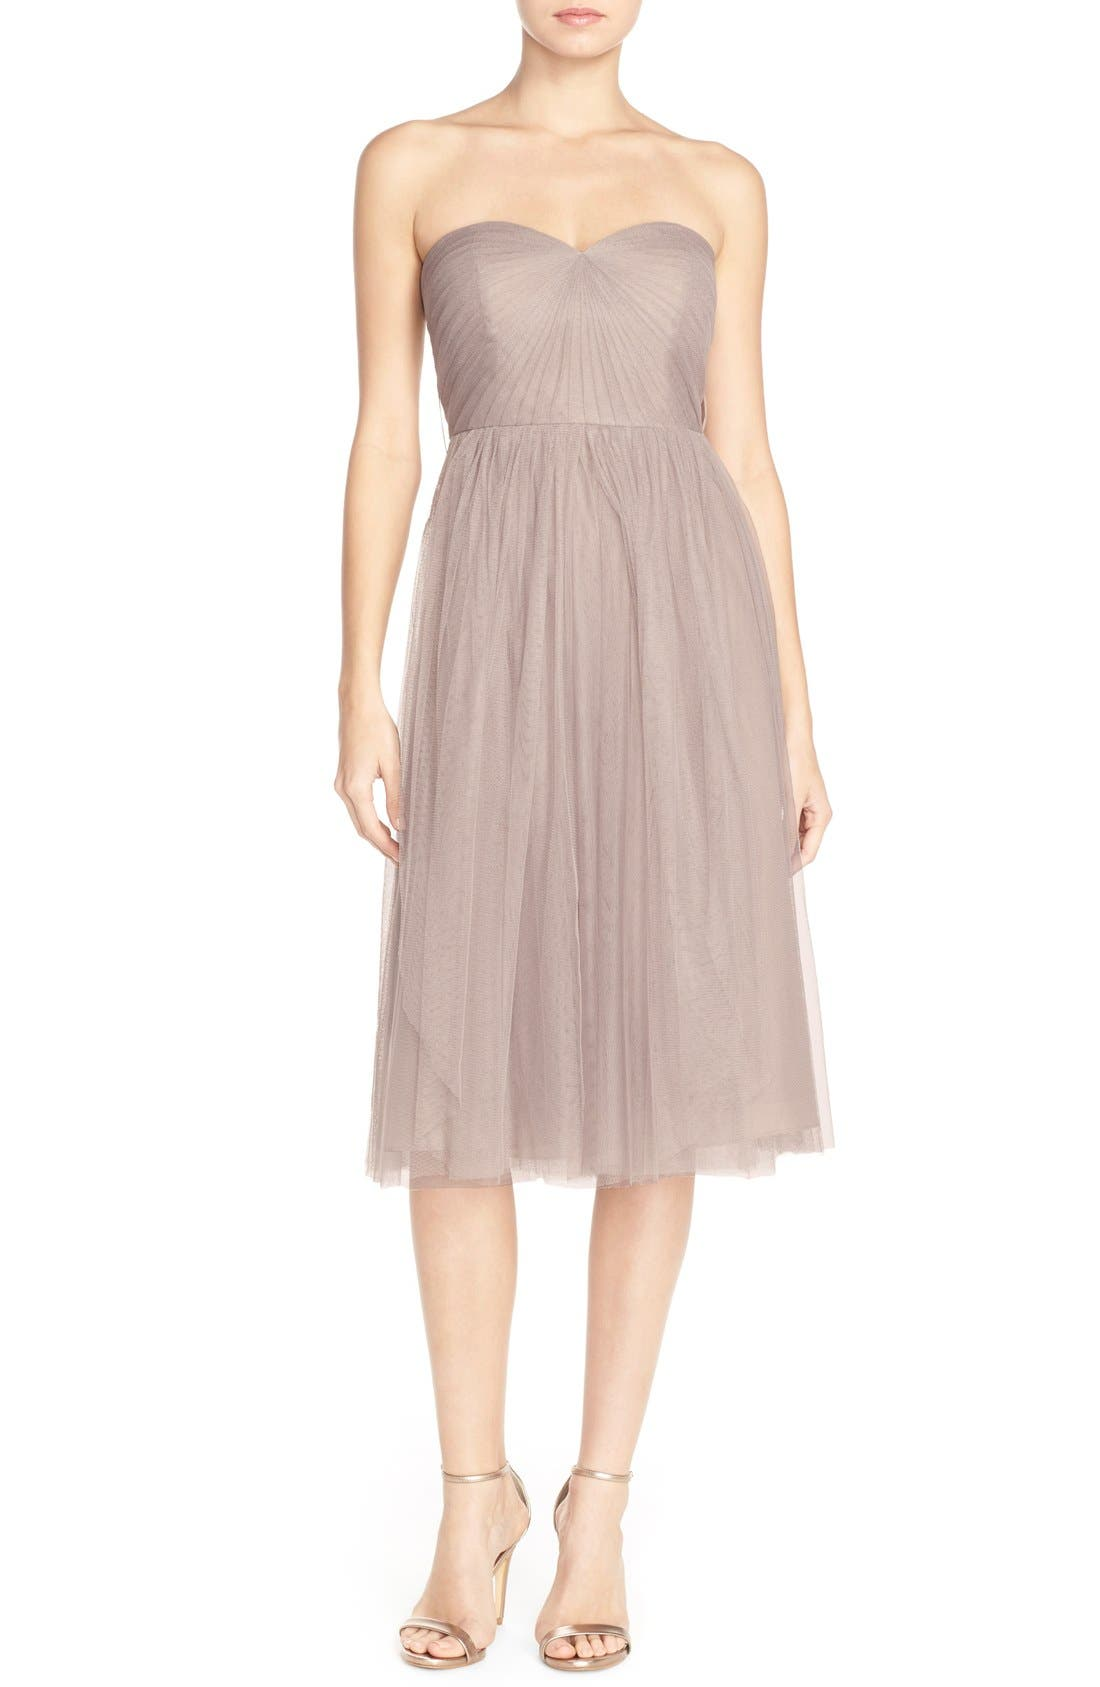 Maia Convertible Tulle Tea Length Fit & Flare Dress,                         Main,                         color, Mink Grey